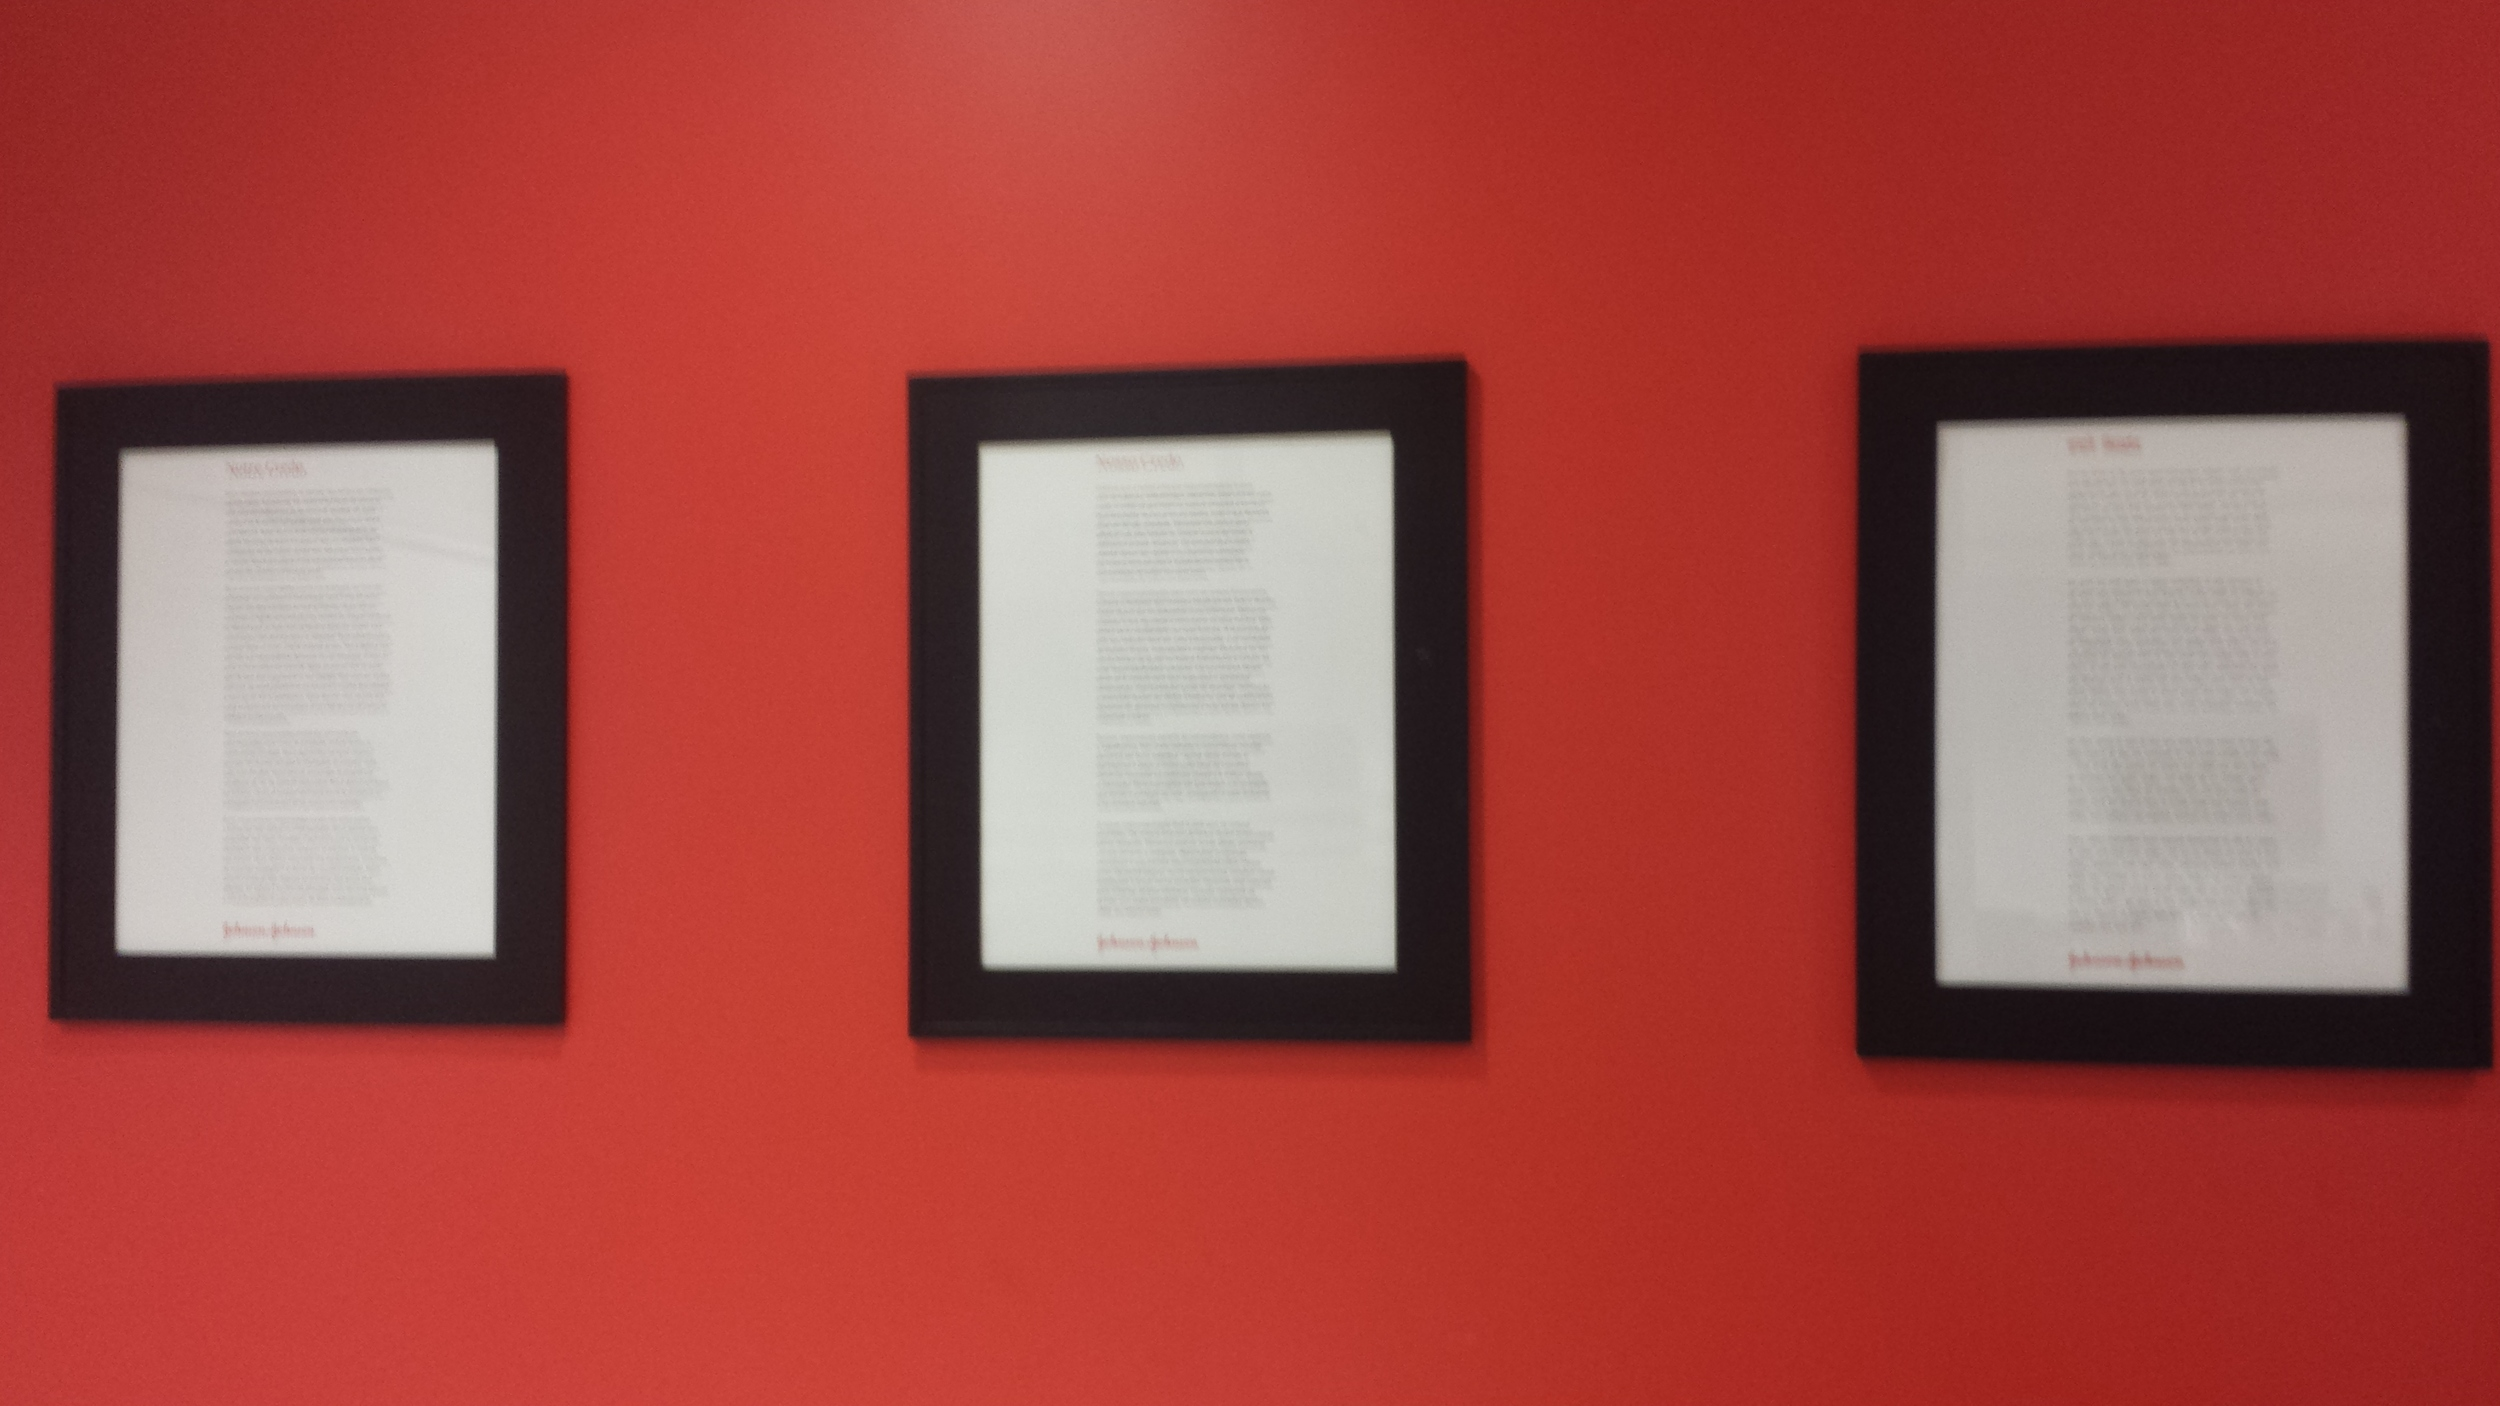 Every room in Johnson & Johnson has the Credo posted on the wall. The Credo is used for guiding the decision making of all employees. It has existed since 1943 and can be seen in all languages.